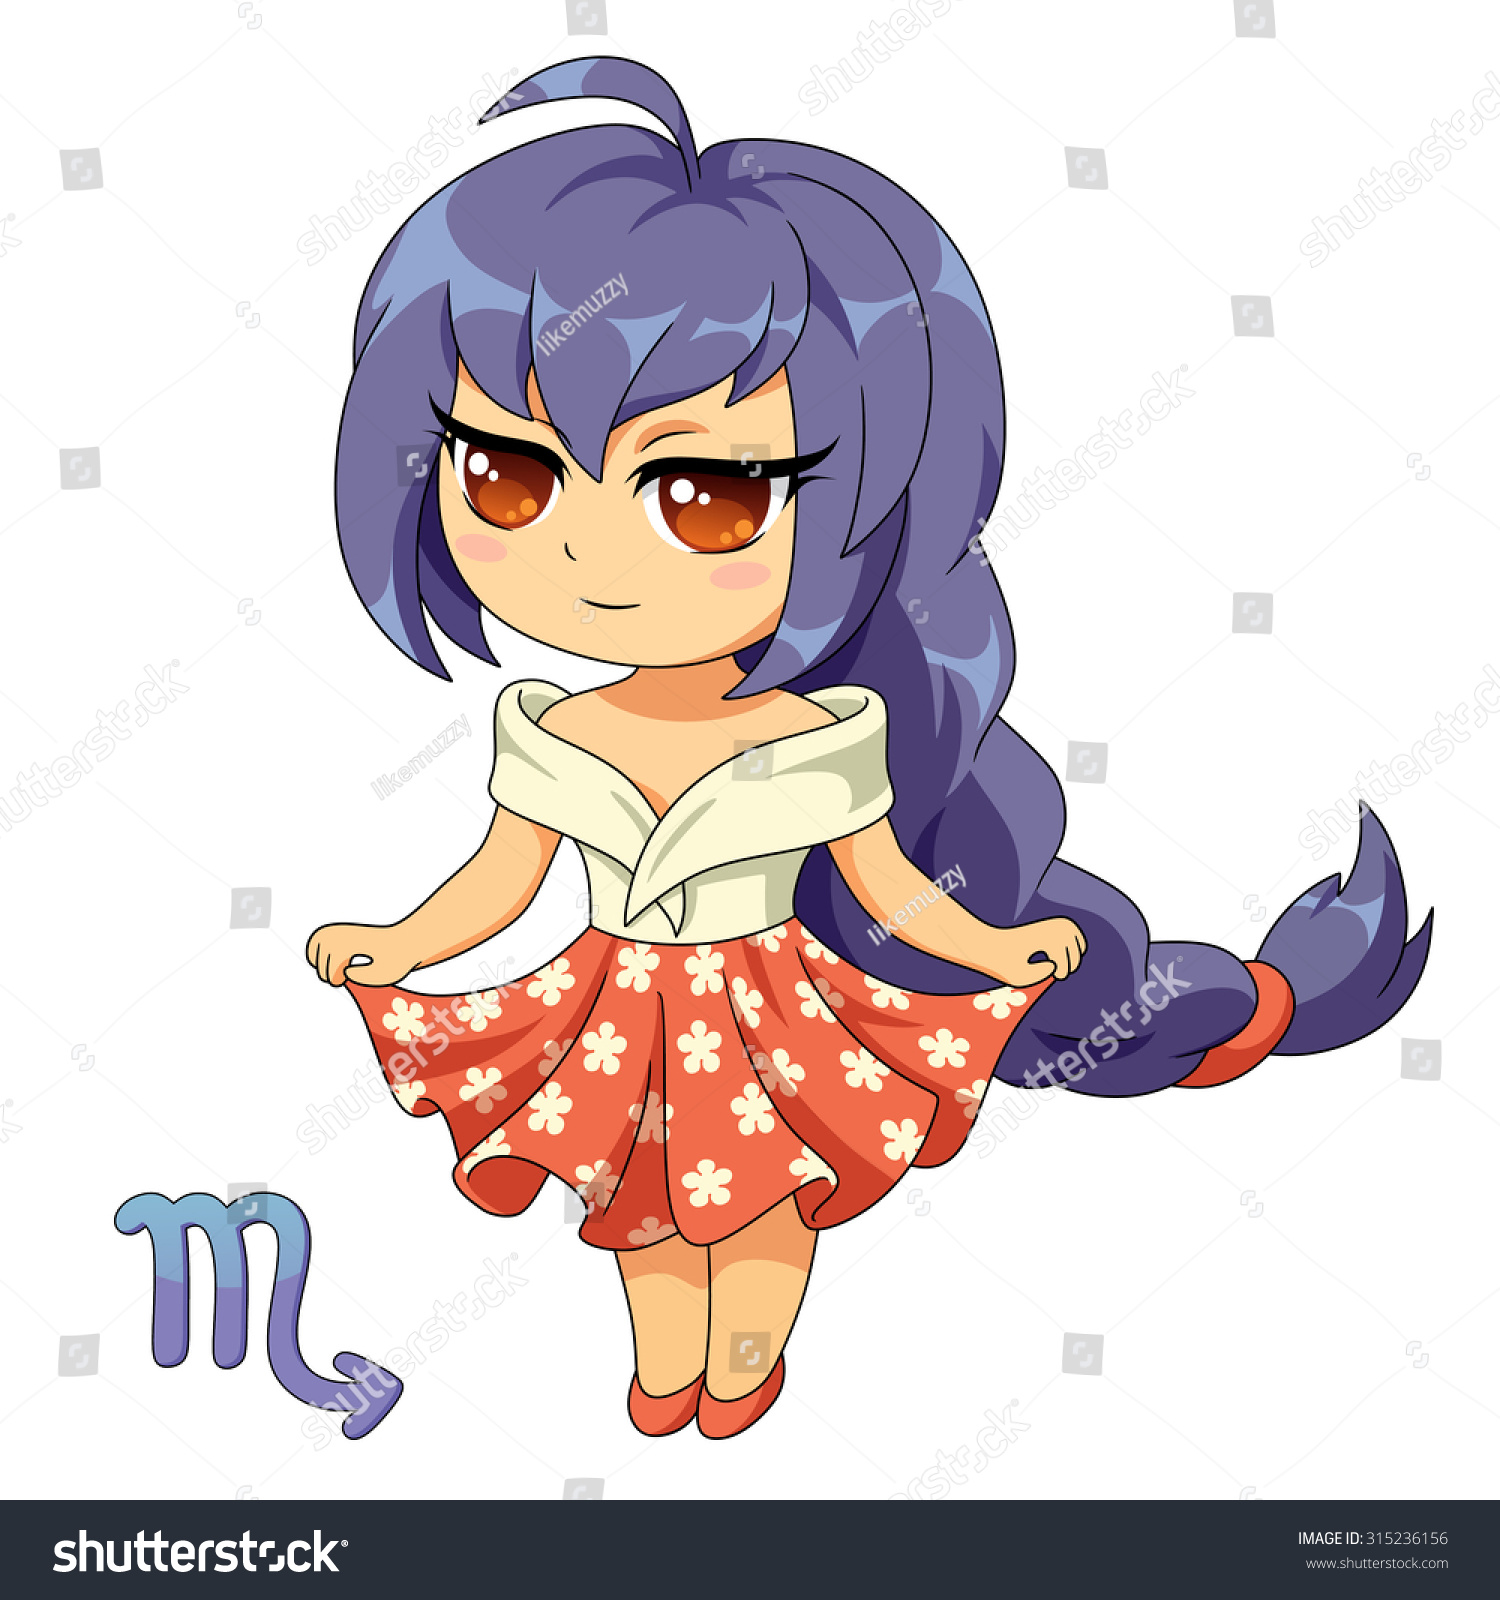 Scorpio Chibi Girl Zodiac Sign Vector Stock Vector